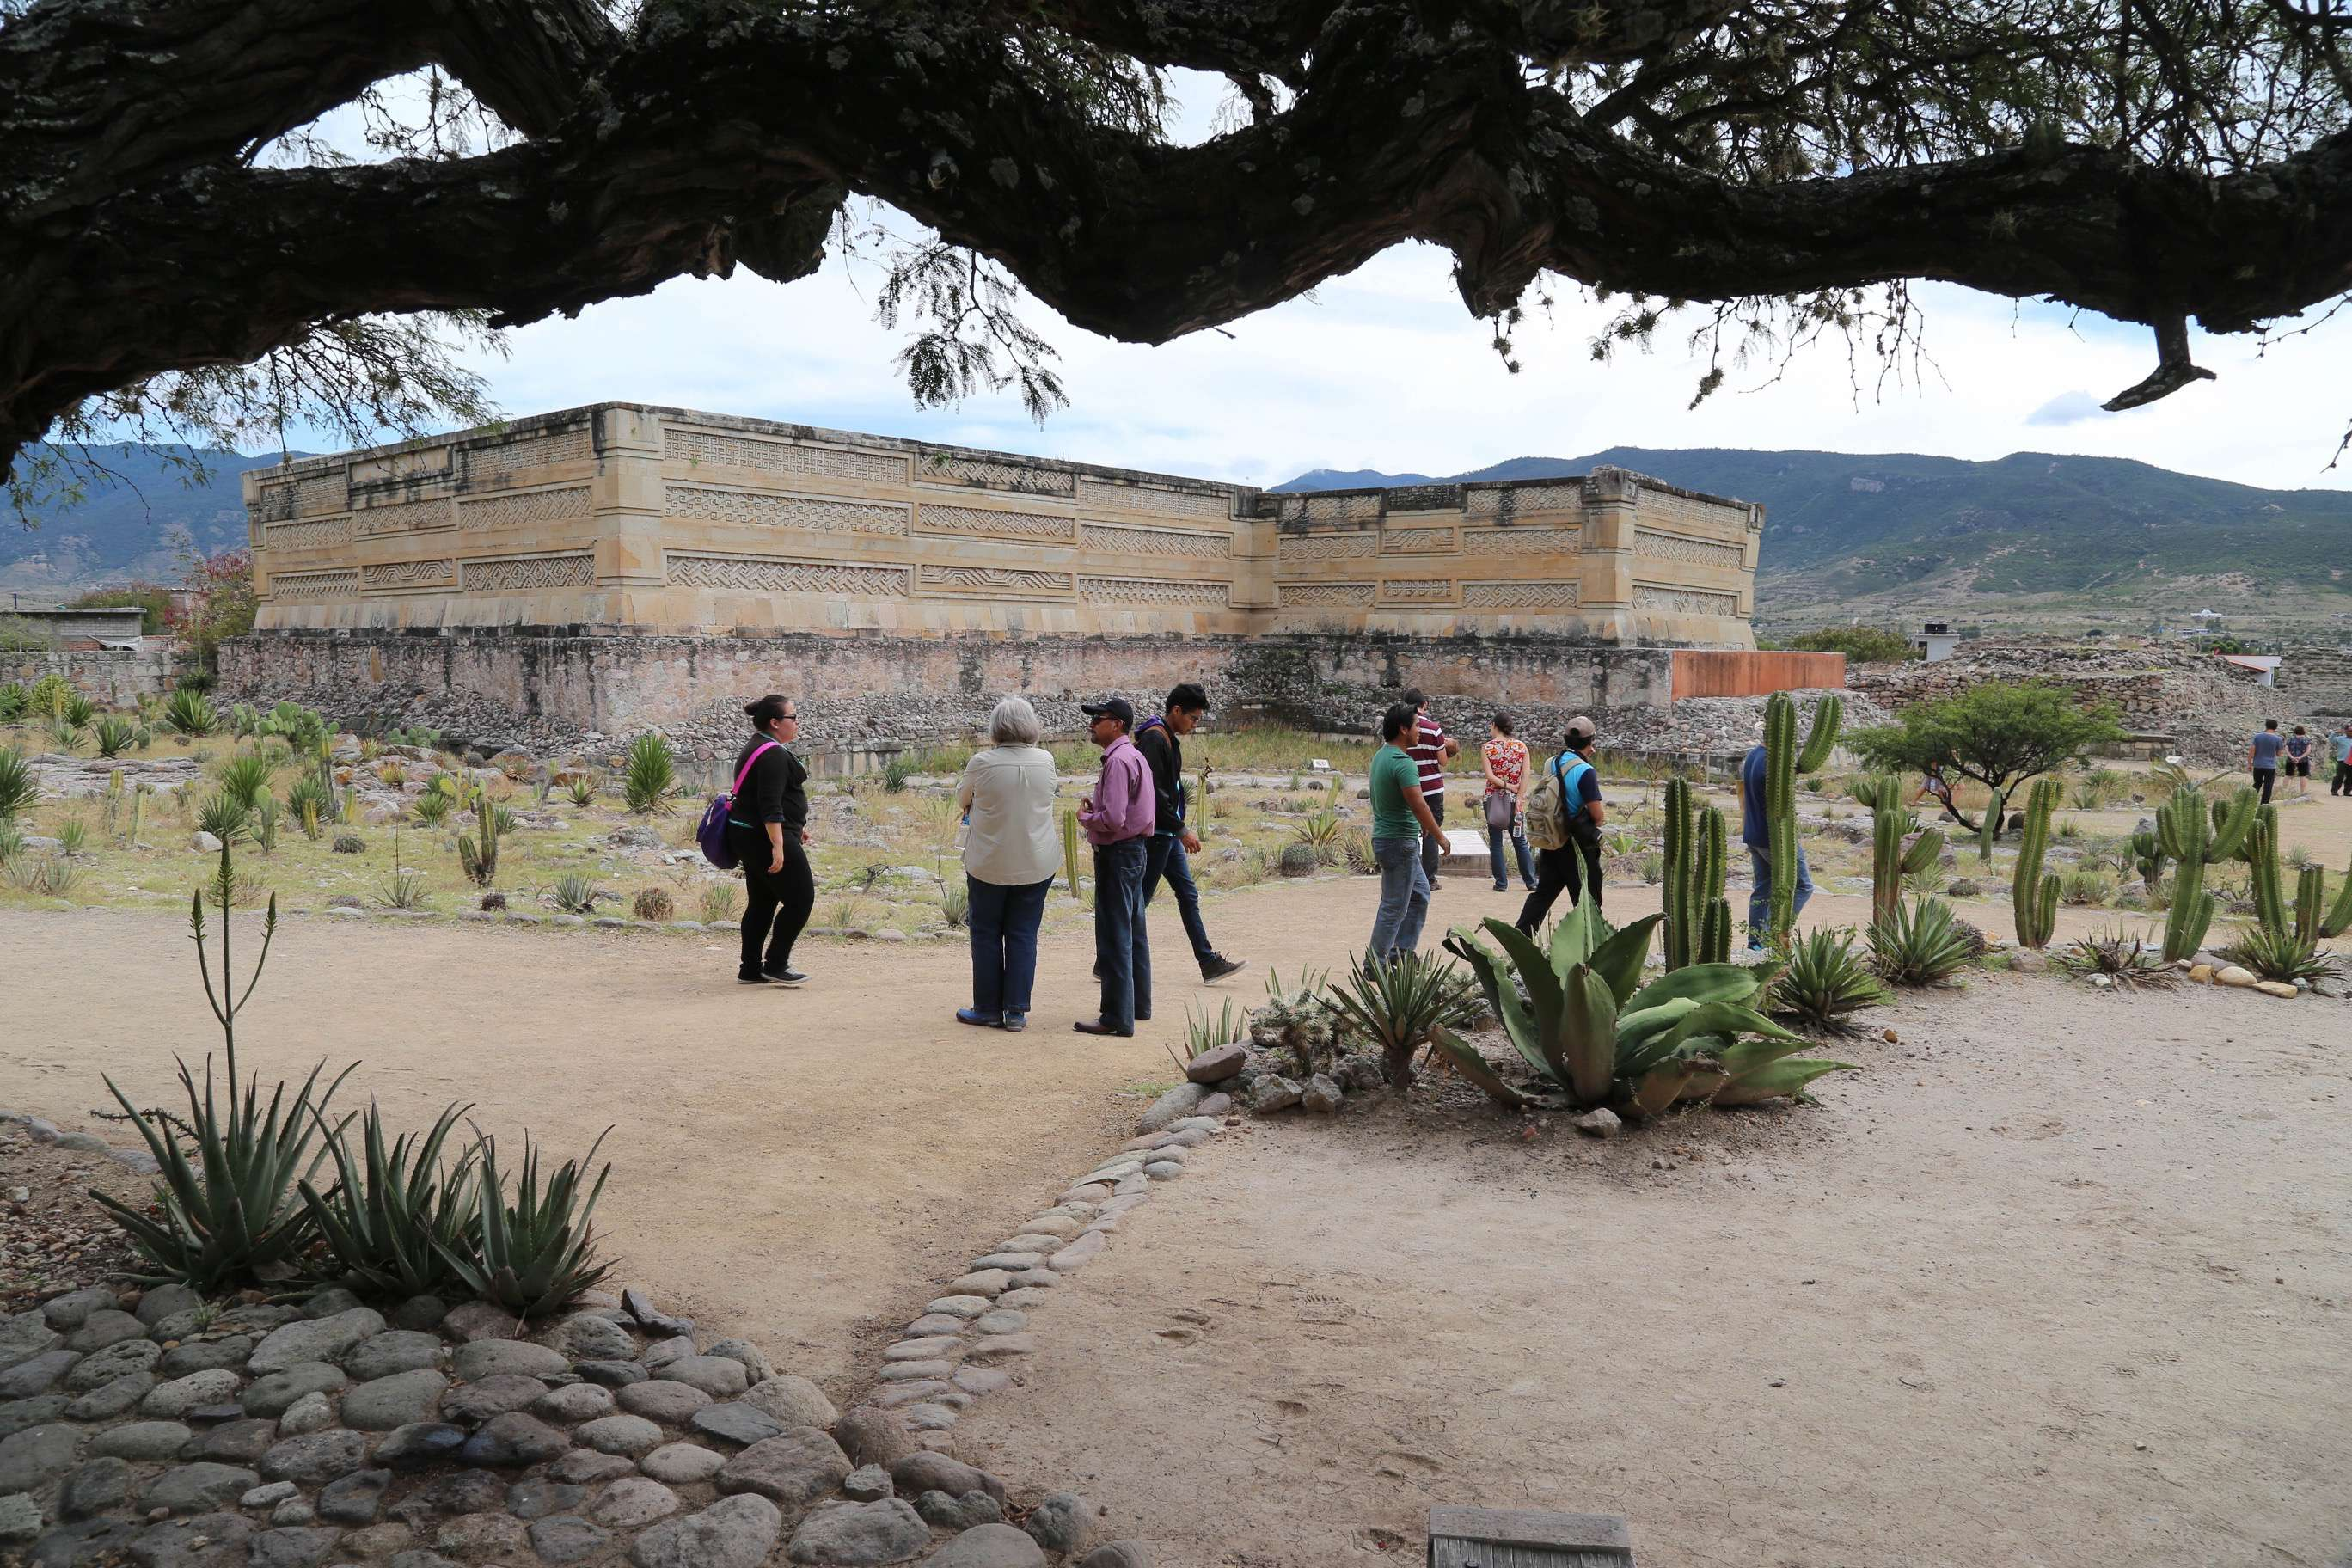 Mitla offers visitors an uncrowded, relaxed way to appreciate one of Mexico's great archaeology gems.